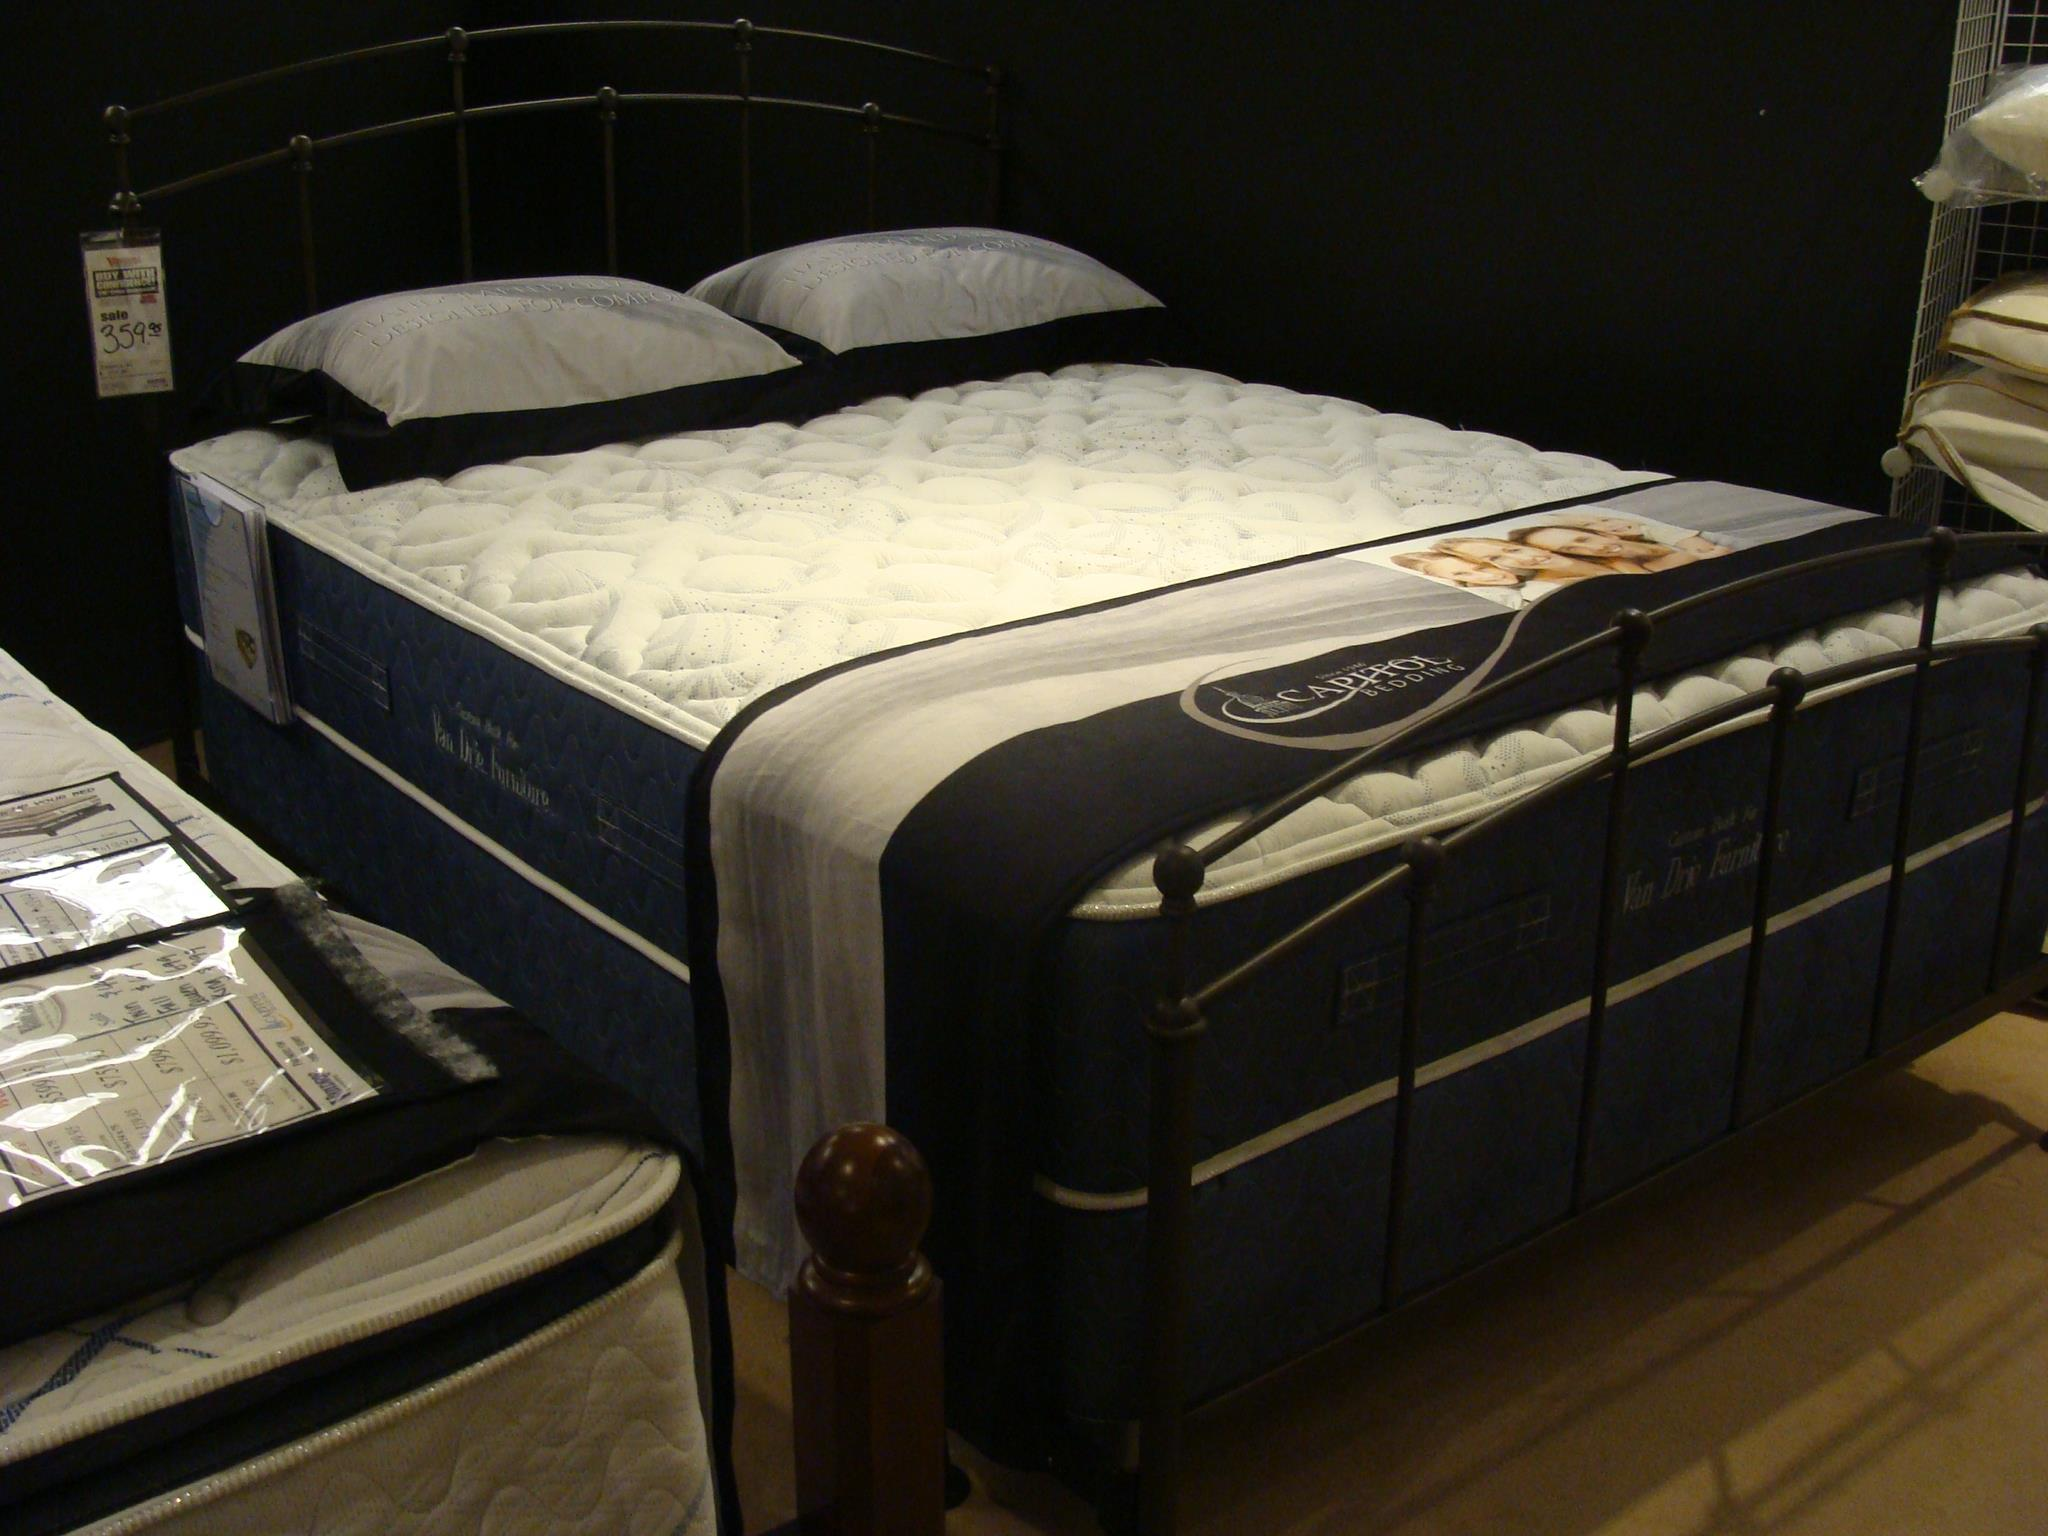 Capitol Bedding Melbourne Firm Twin Mattress Only - Item Number: Innerspring-T